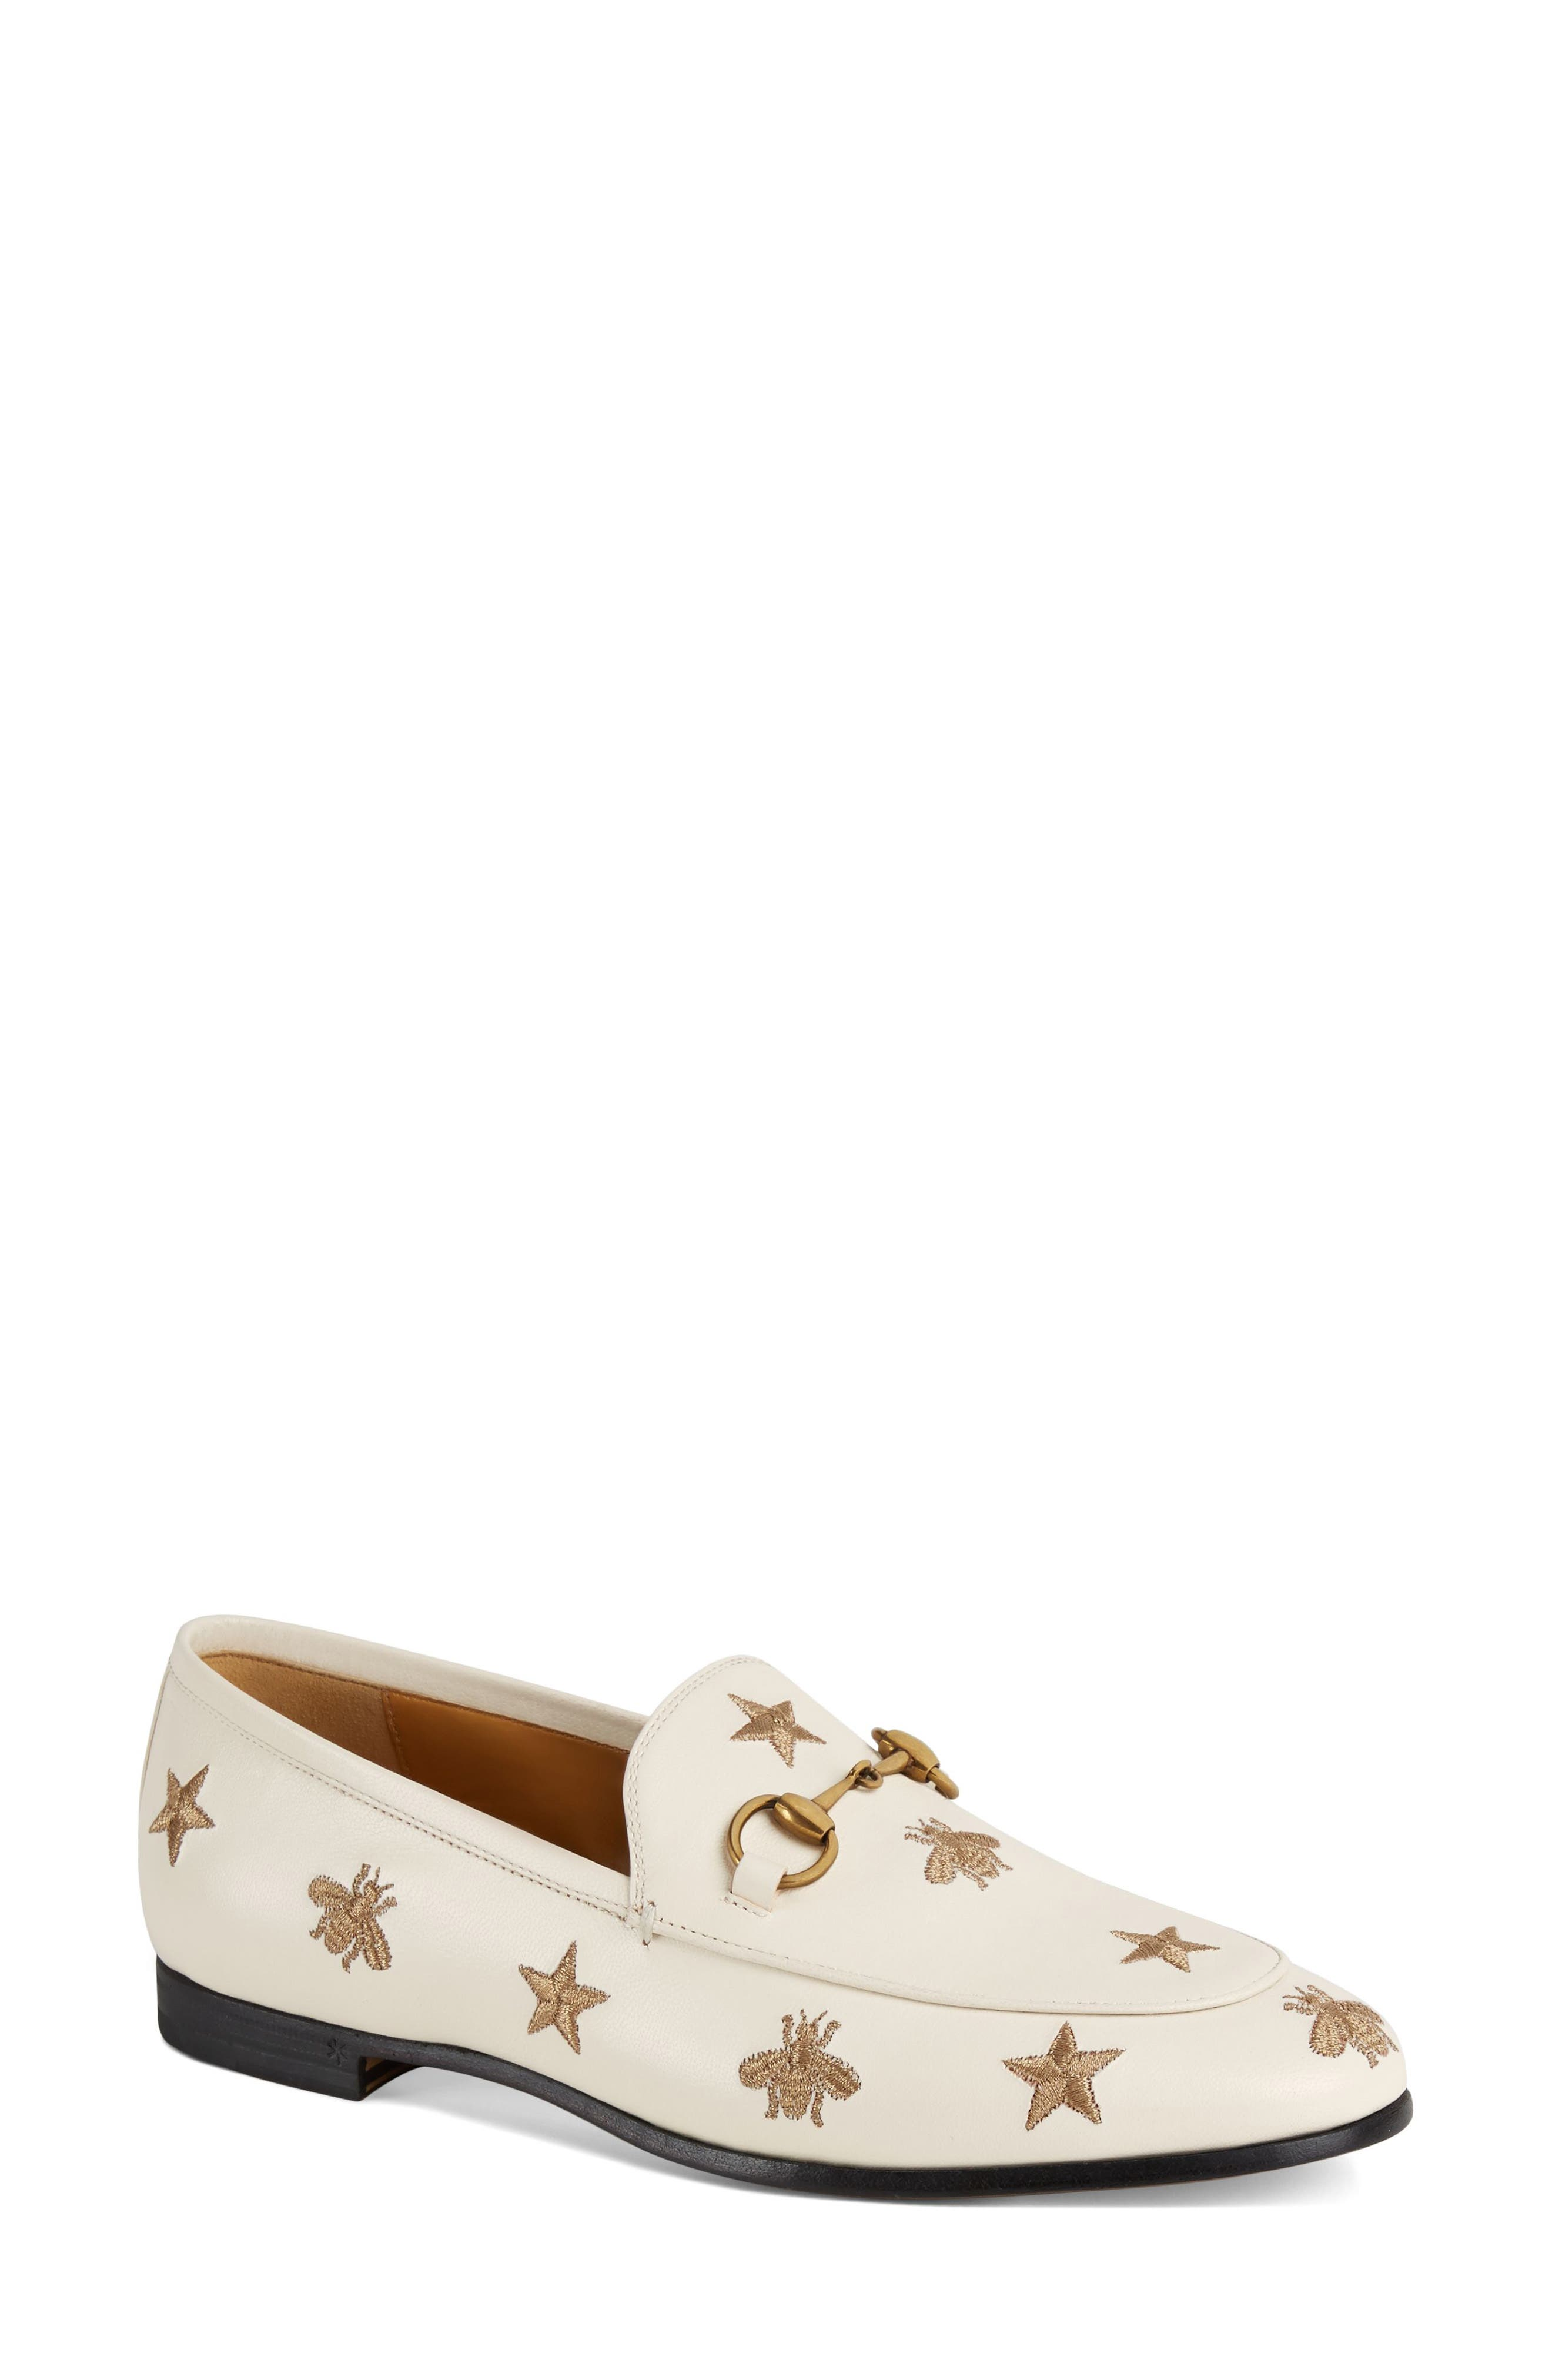 Jordaan Embroidered Bee Loafer,                         Main,                         color, Mystic White